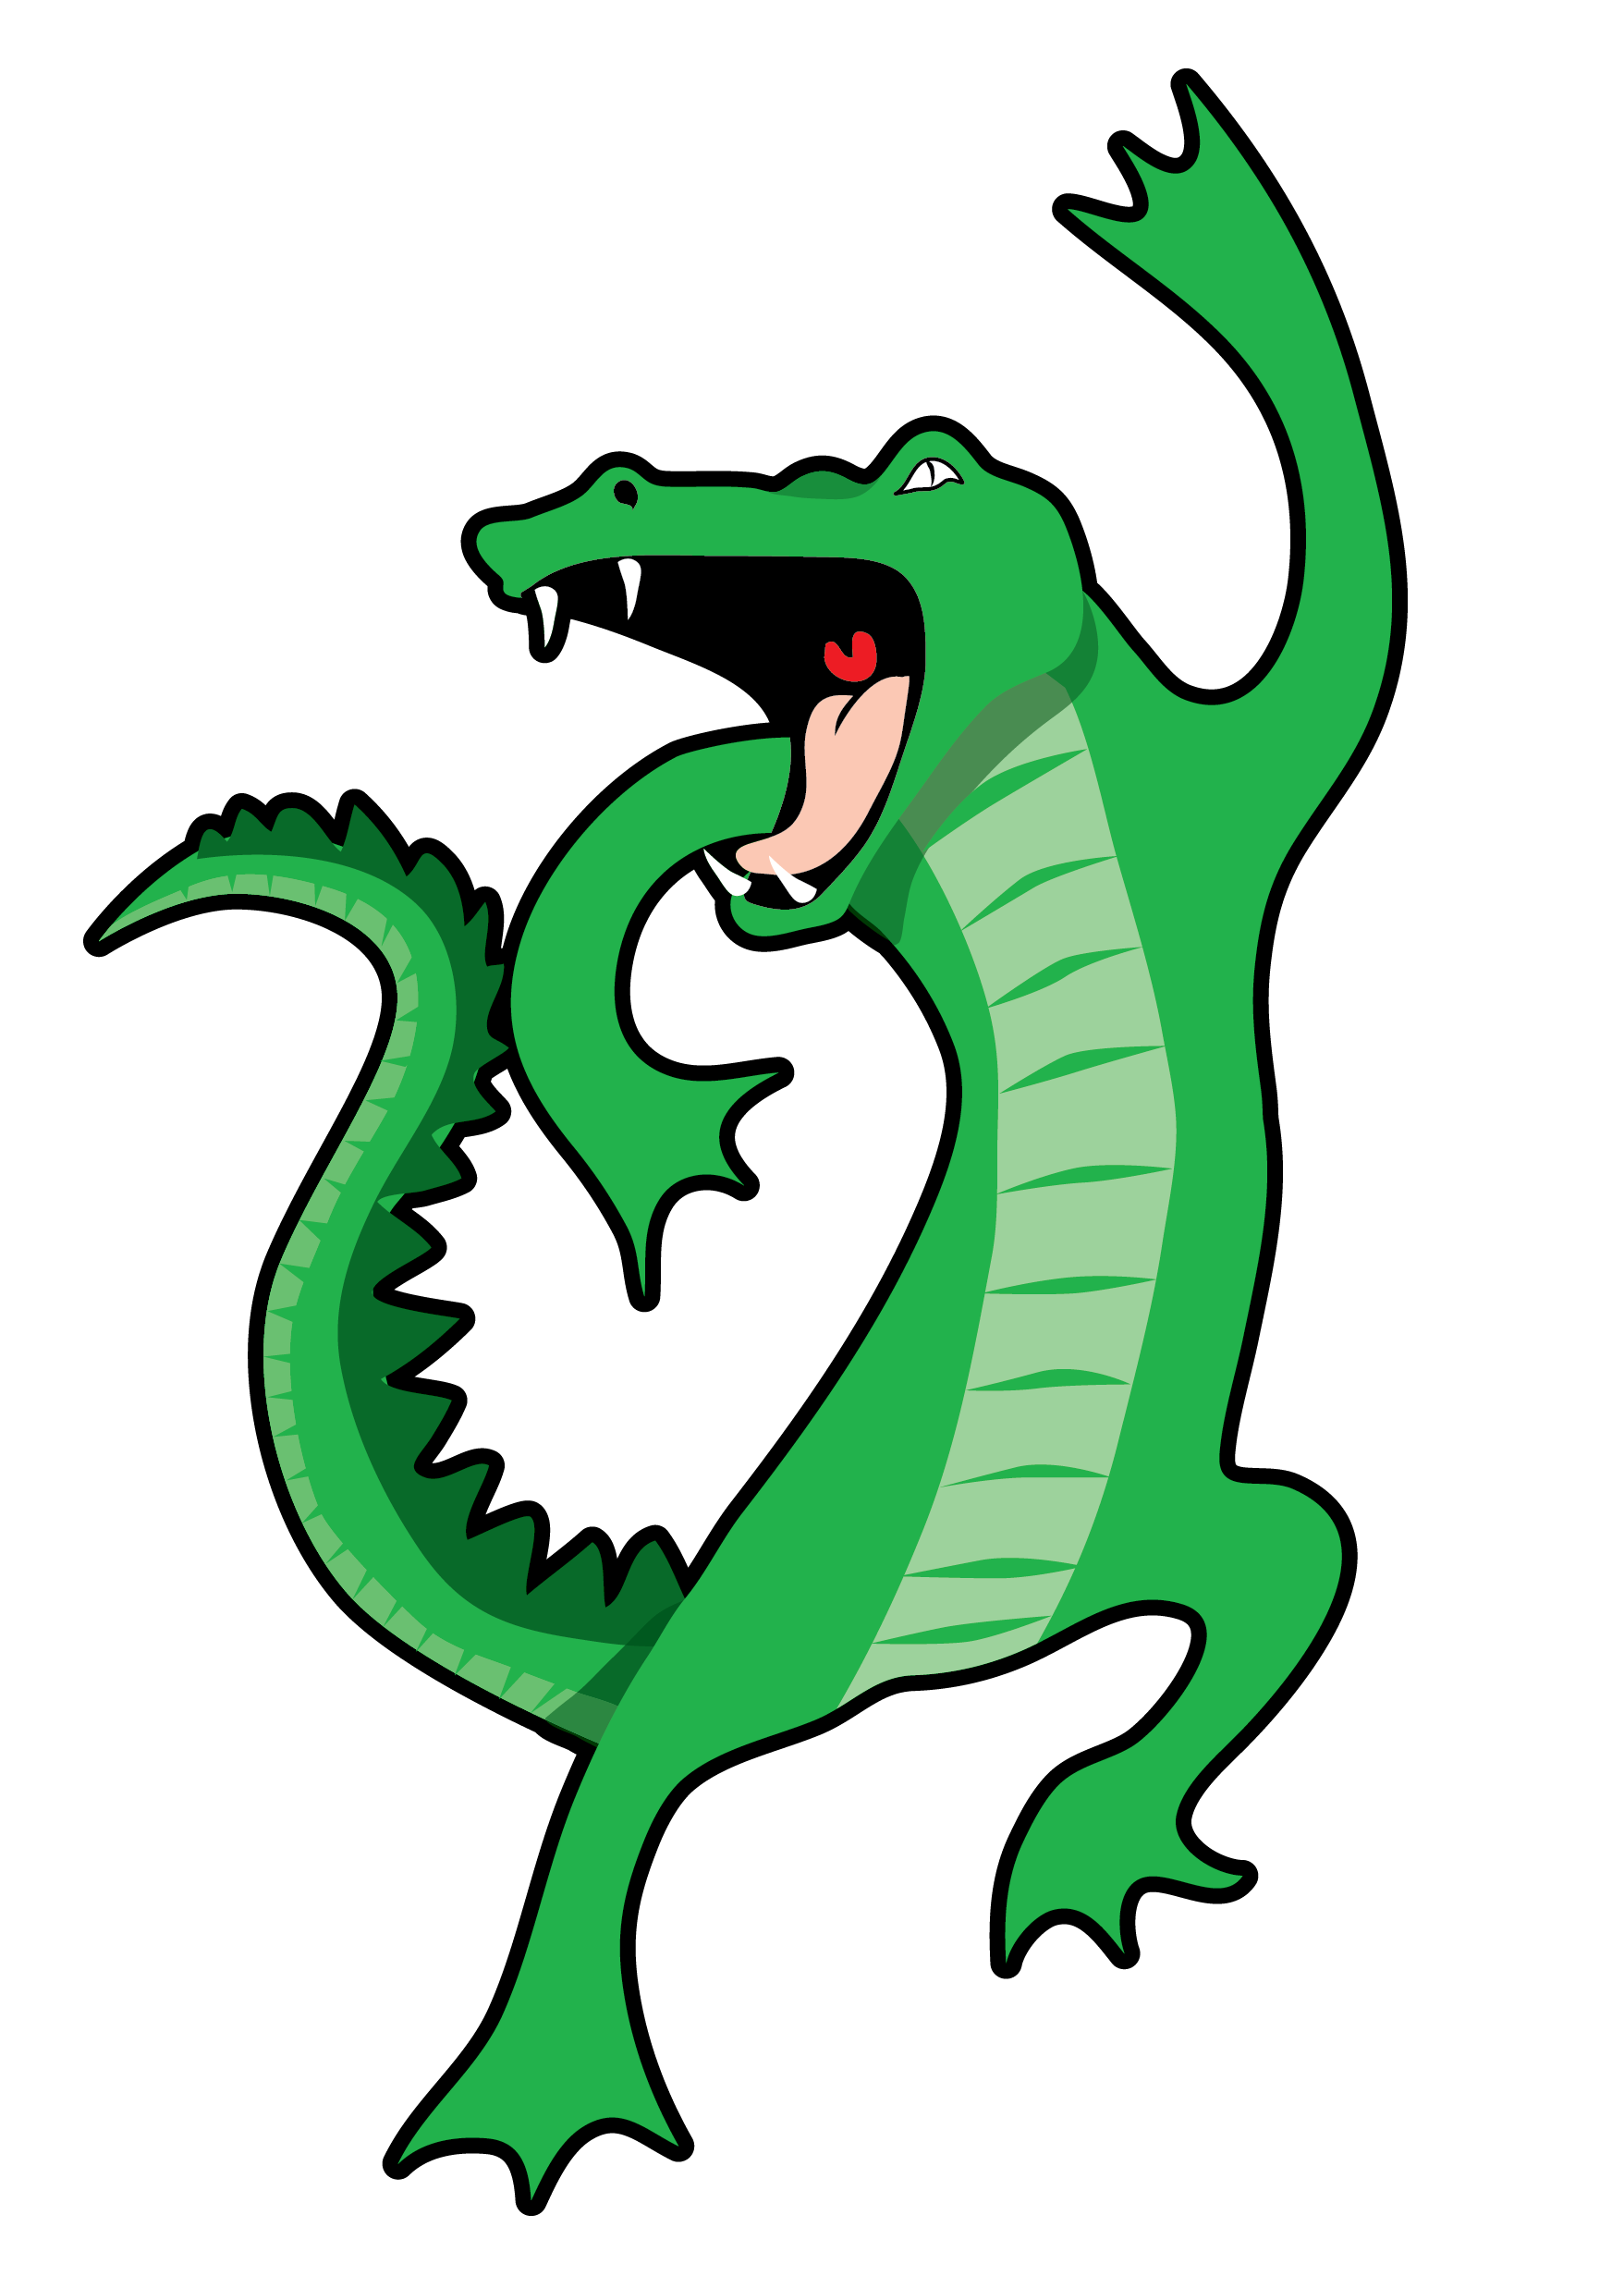 Alligator jumping clipart clipart free stock Singing Gator - New Orleans Free Vector Clip Art clipart free stock